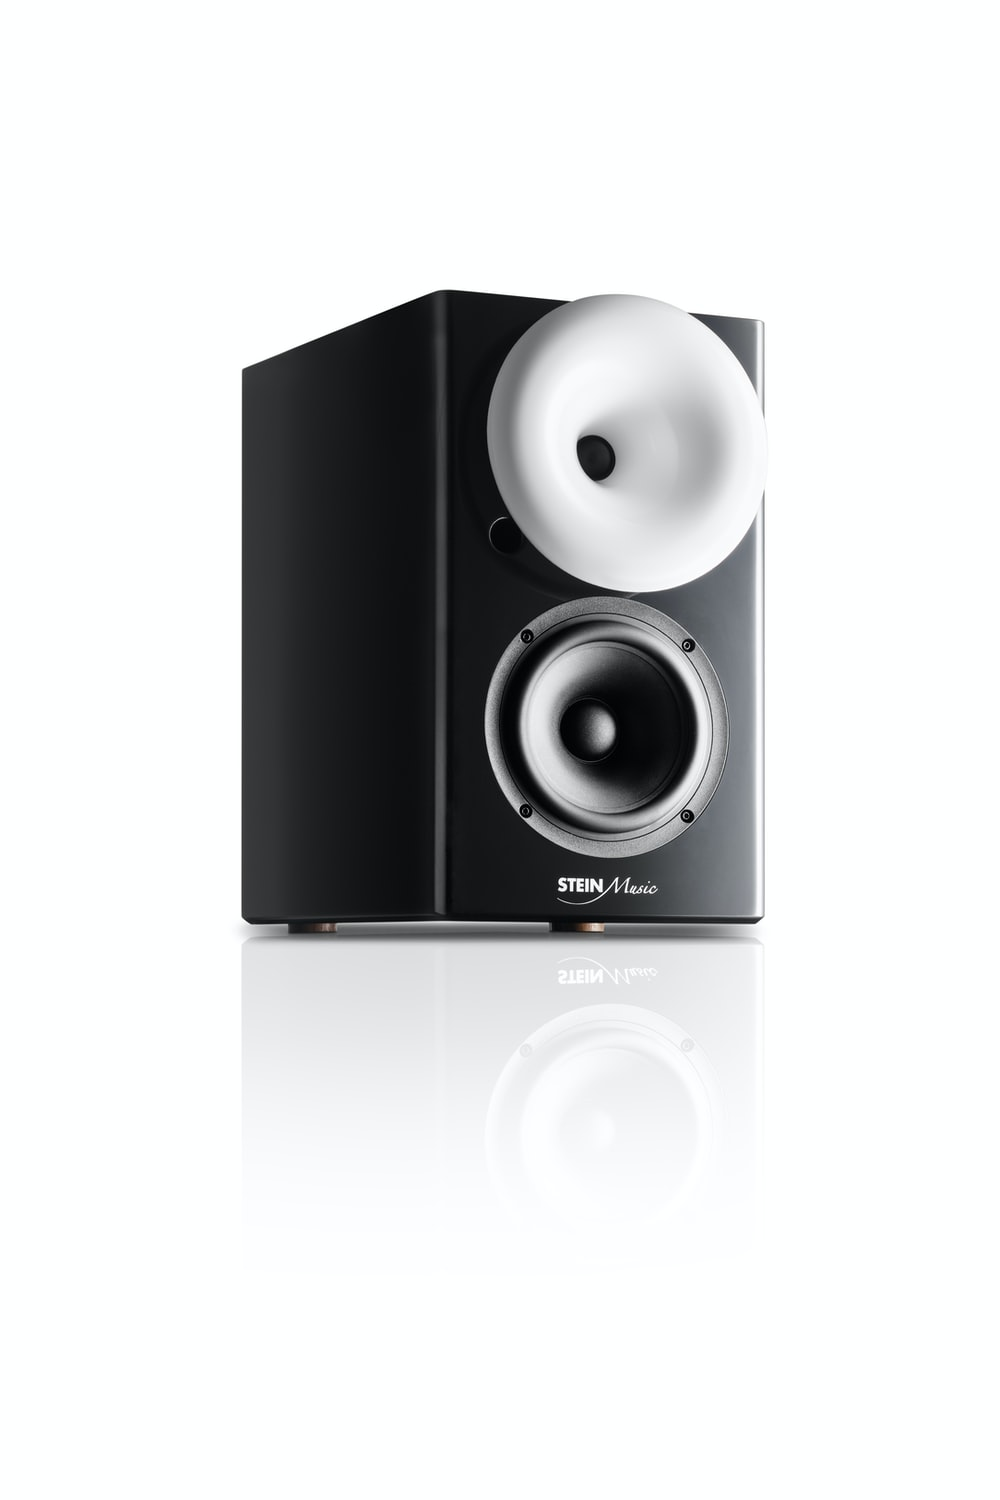 black and silver speaker on white background